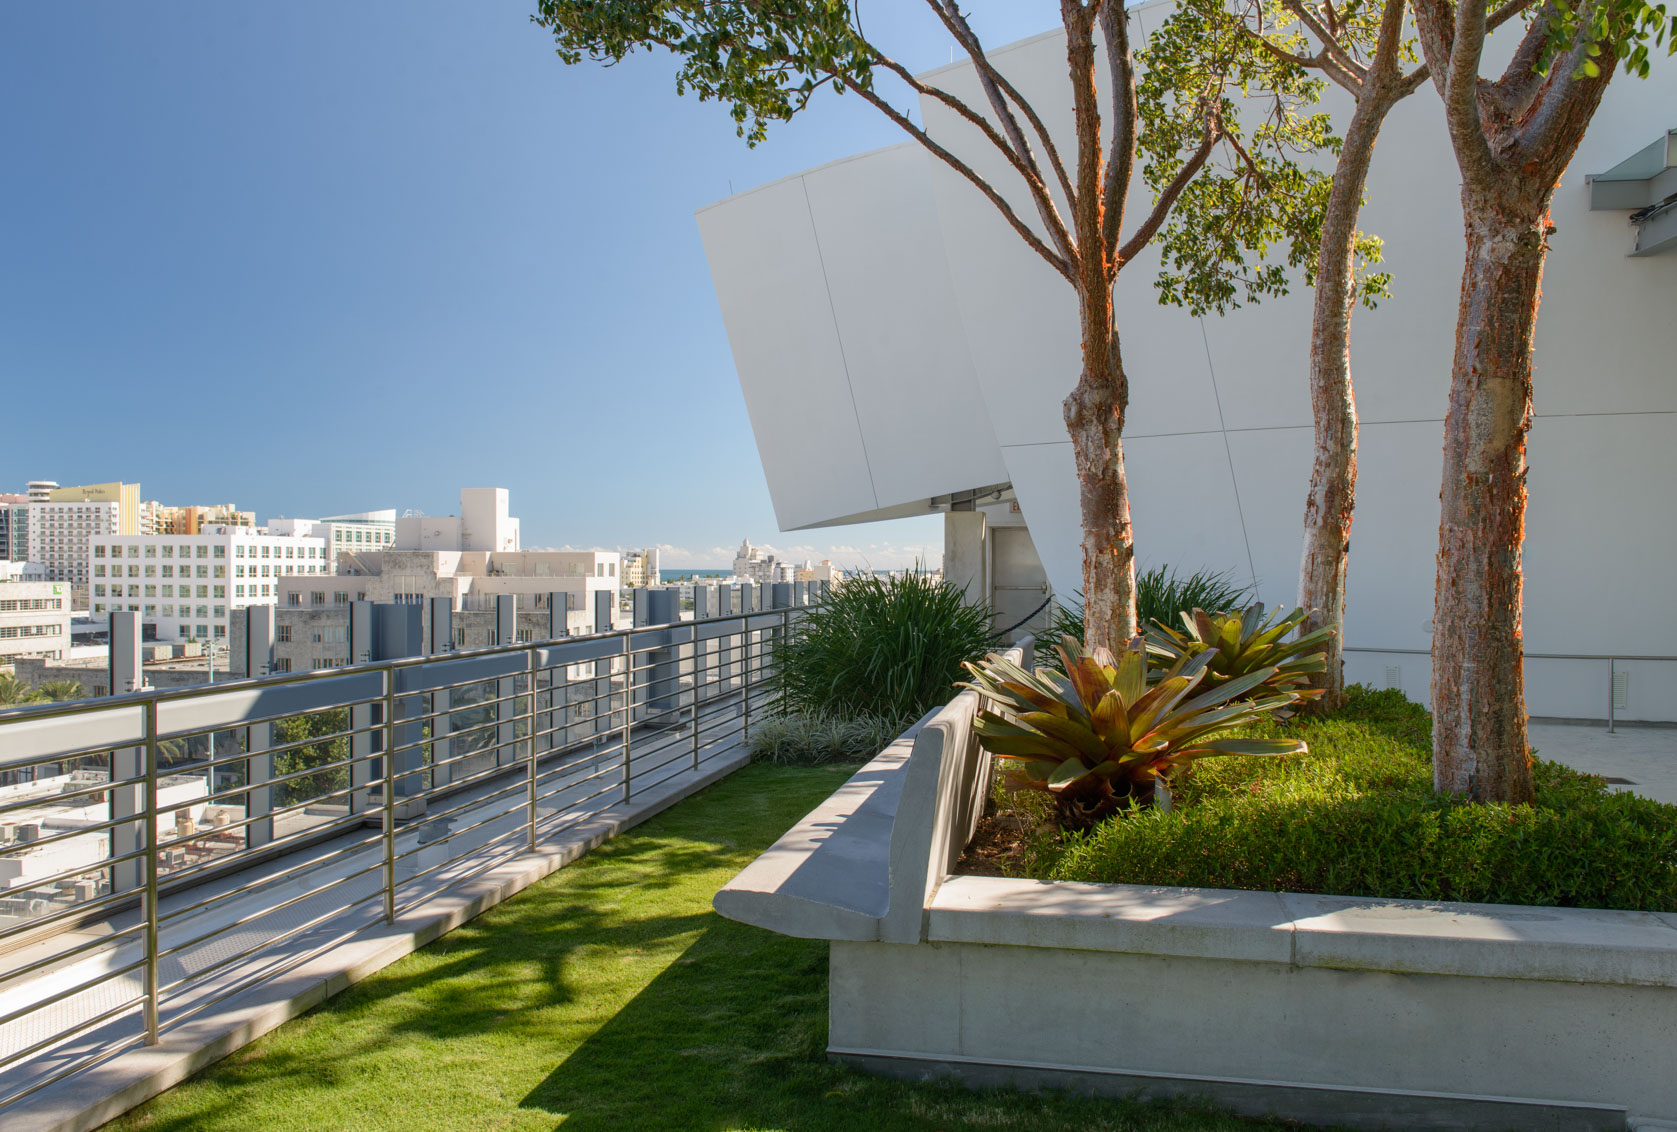 New-World-Symphony-Rooftop-Garden-10